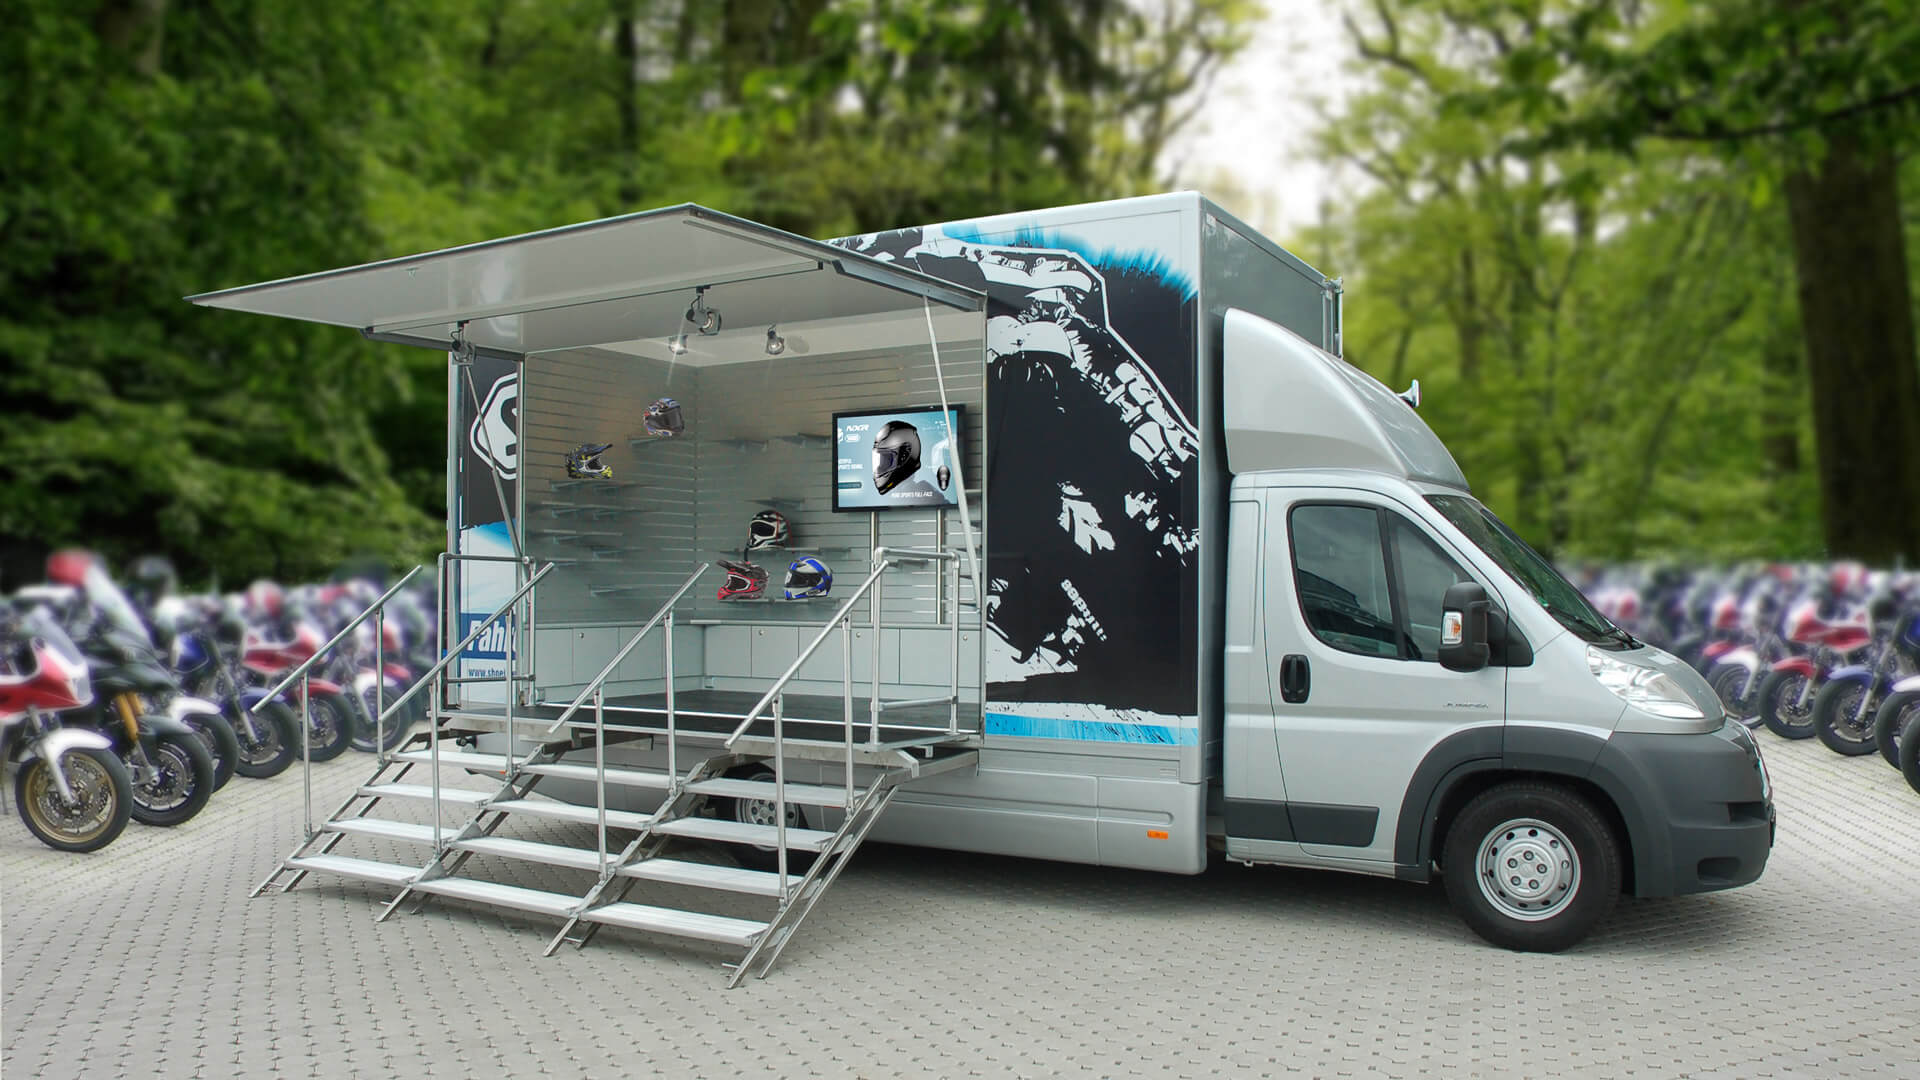 Infobus Roadshow Showtruck mobiles-Marketing